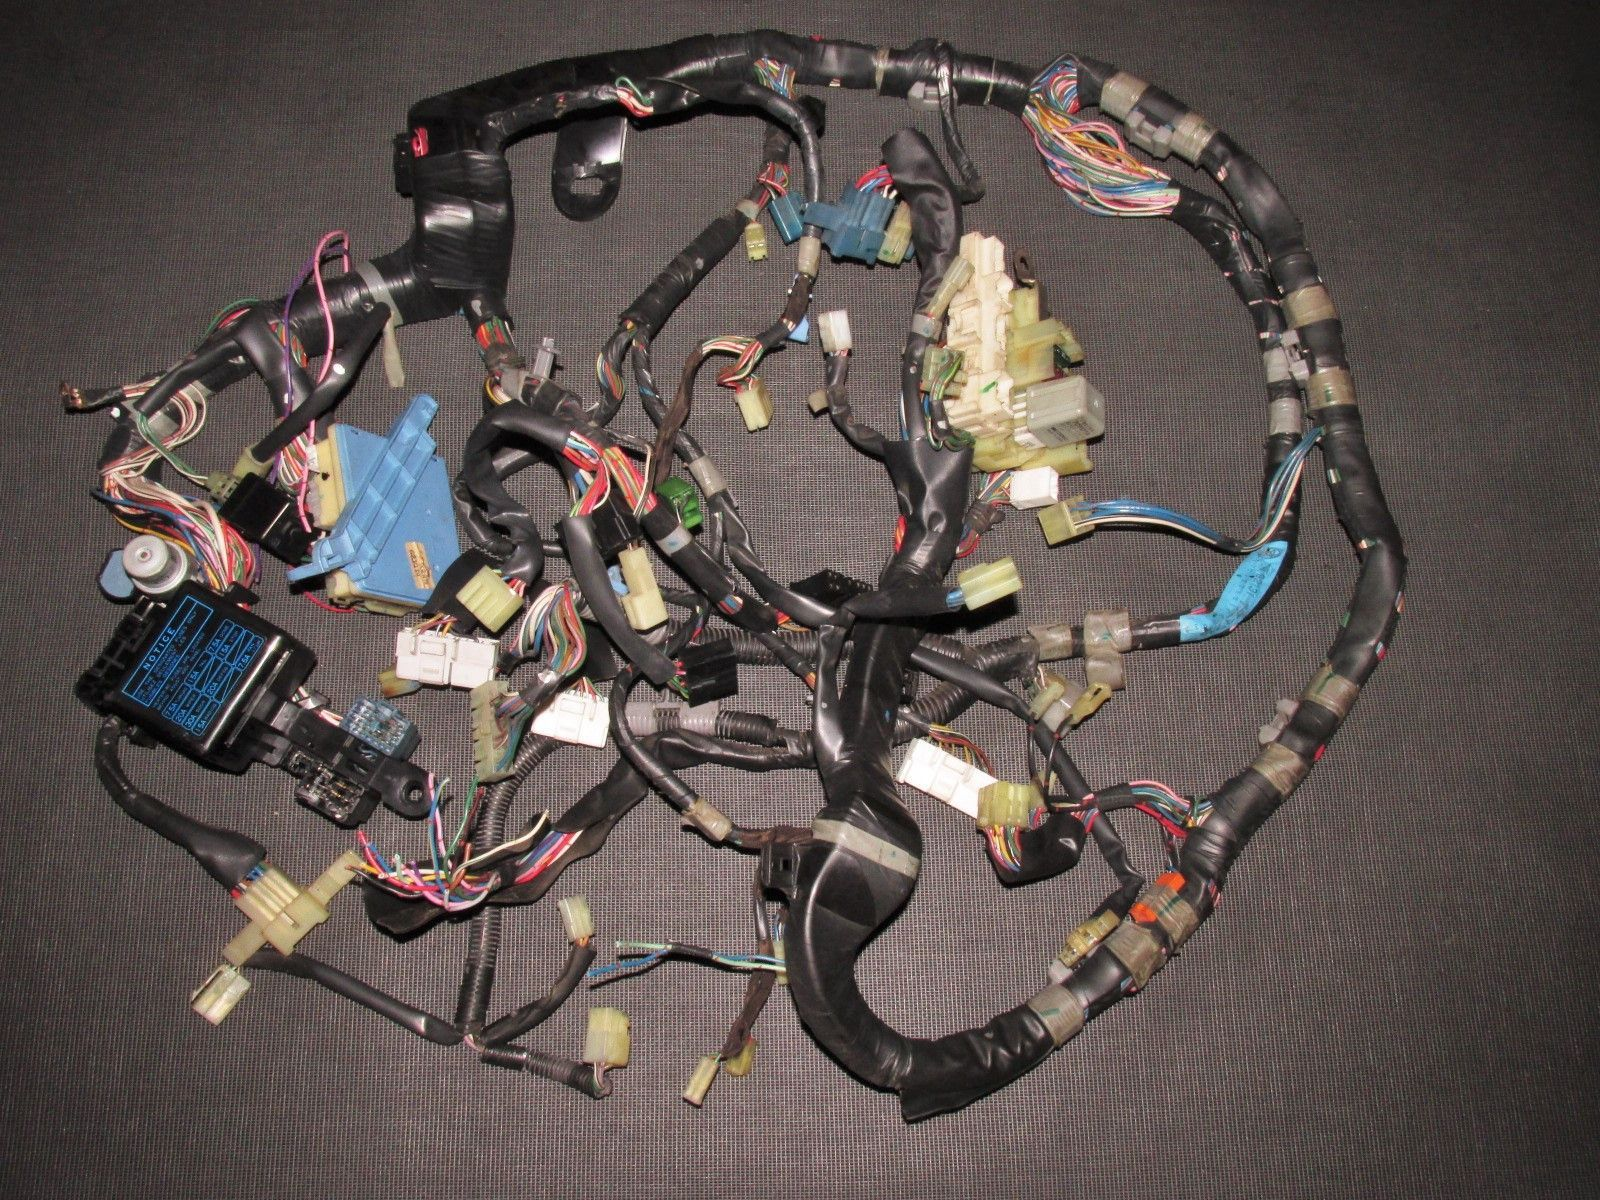 87 88 89 Toyota MR2 OEM Dash Wiring Harness - 4AGE M/T Toyota Mr2